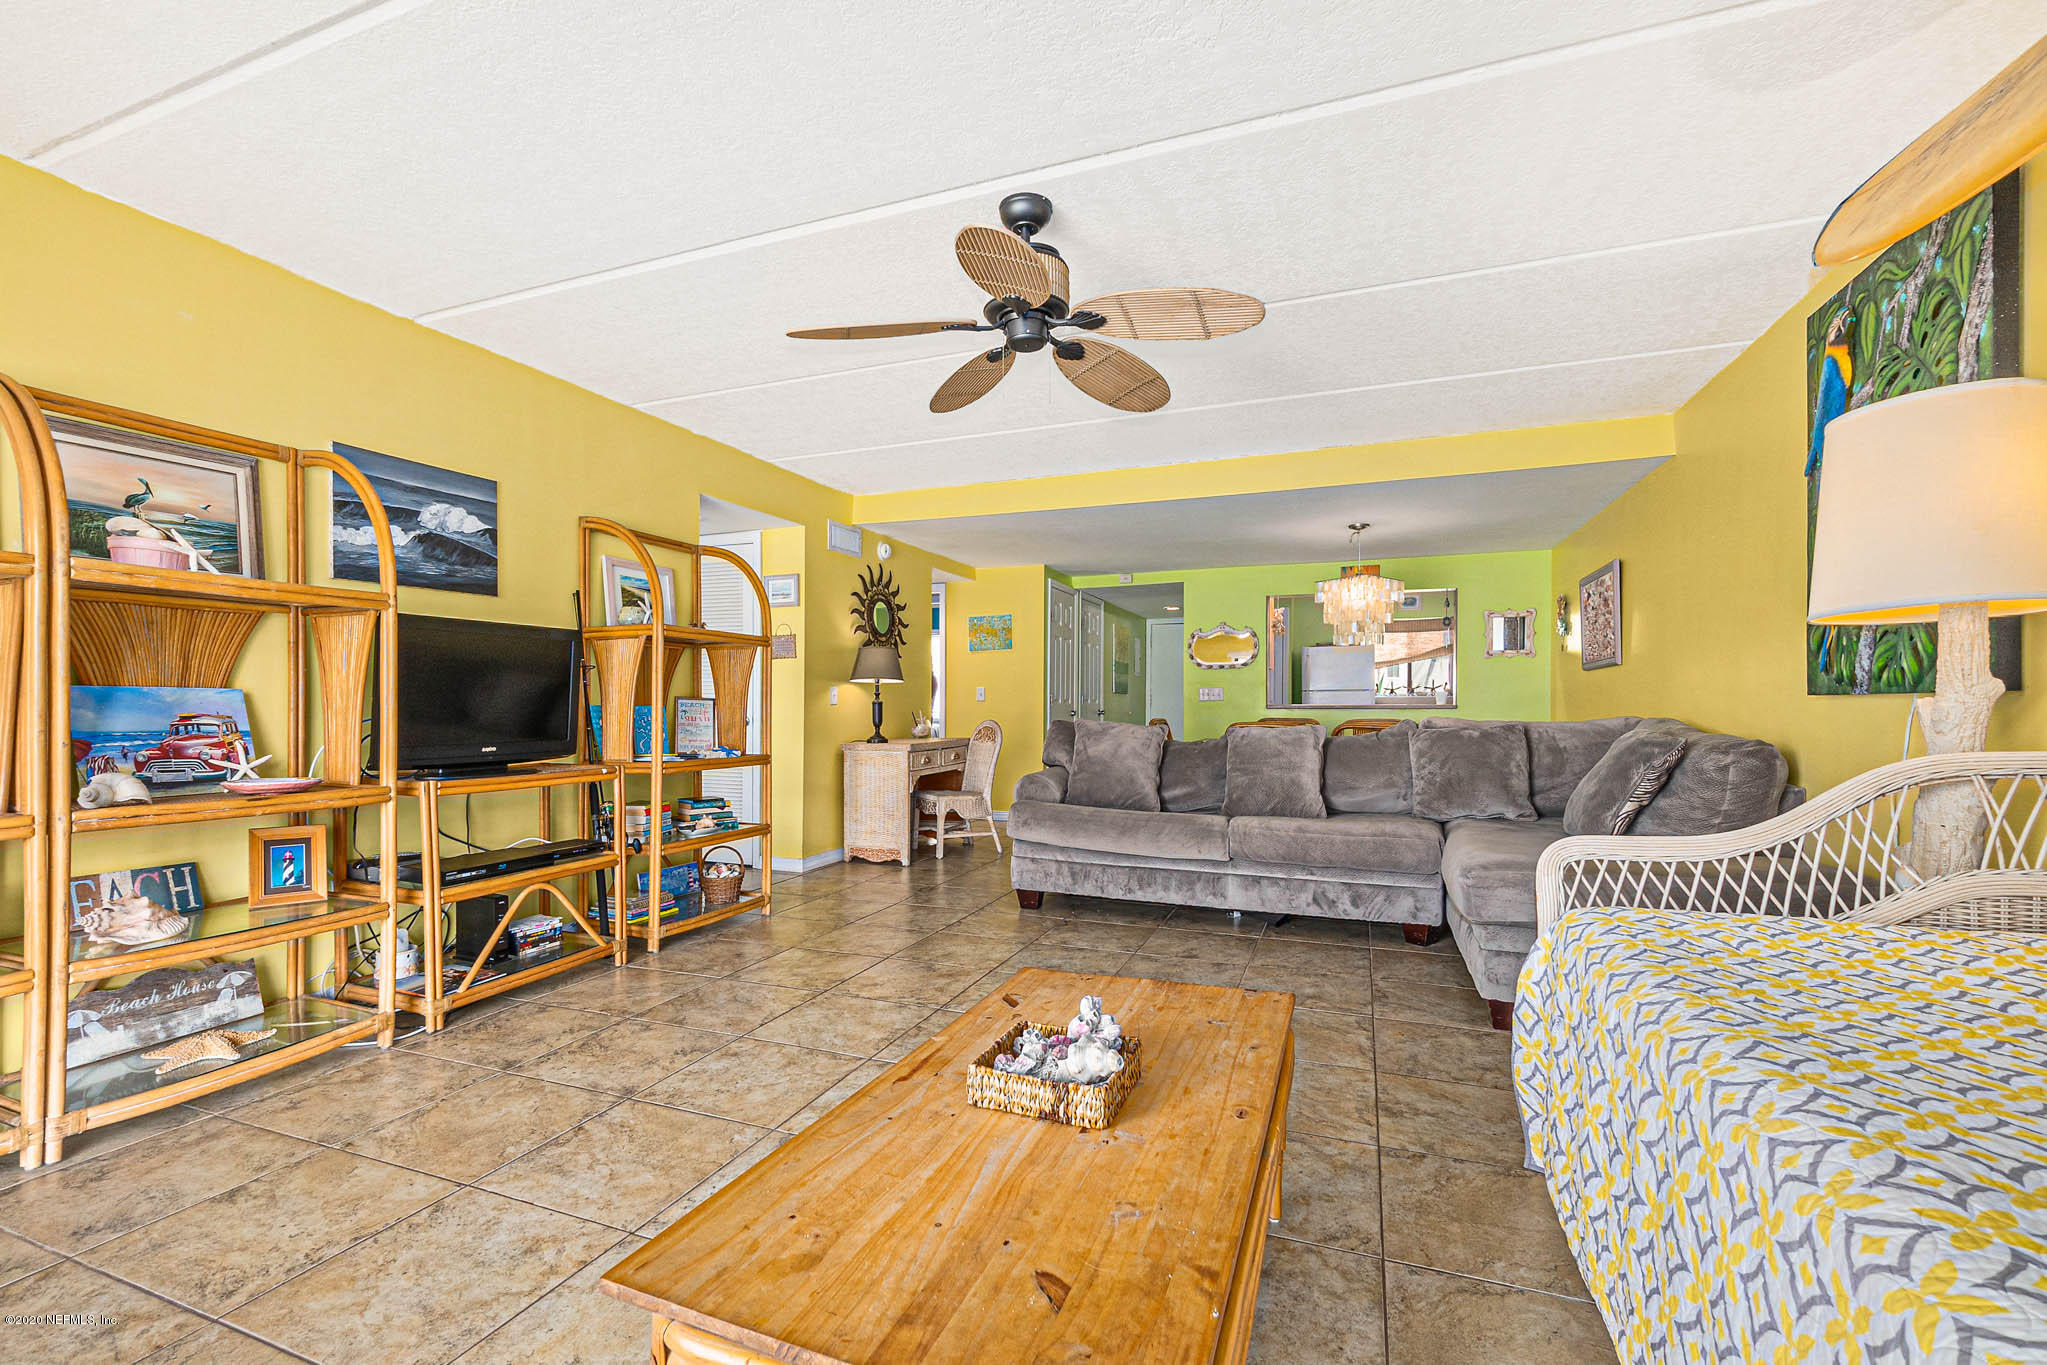 8550 A1A, ST AUGUSTINE, FLORIDA 32080, 2 Bedrooms Bedrooms, ,2 BathroomsBathrooms,Residential,For sale,A1A,1054999